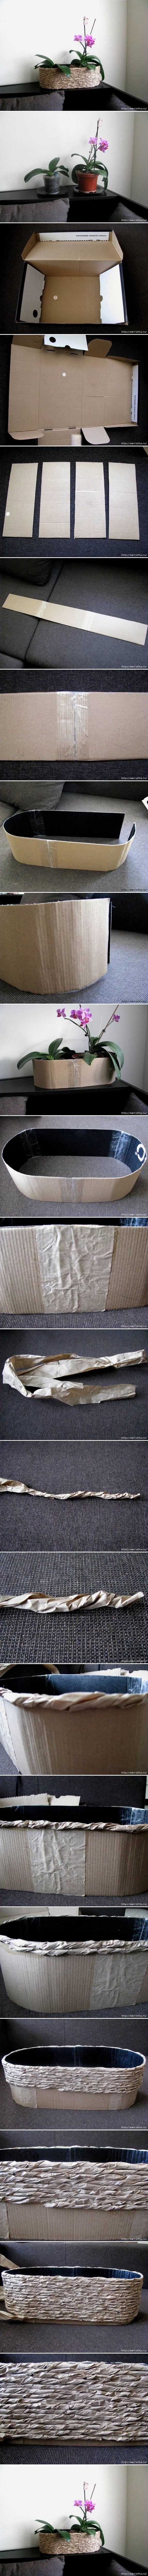 DIY Cardboard and Packaging Paper Plant Pot